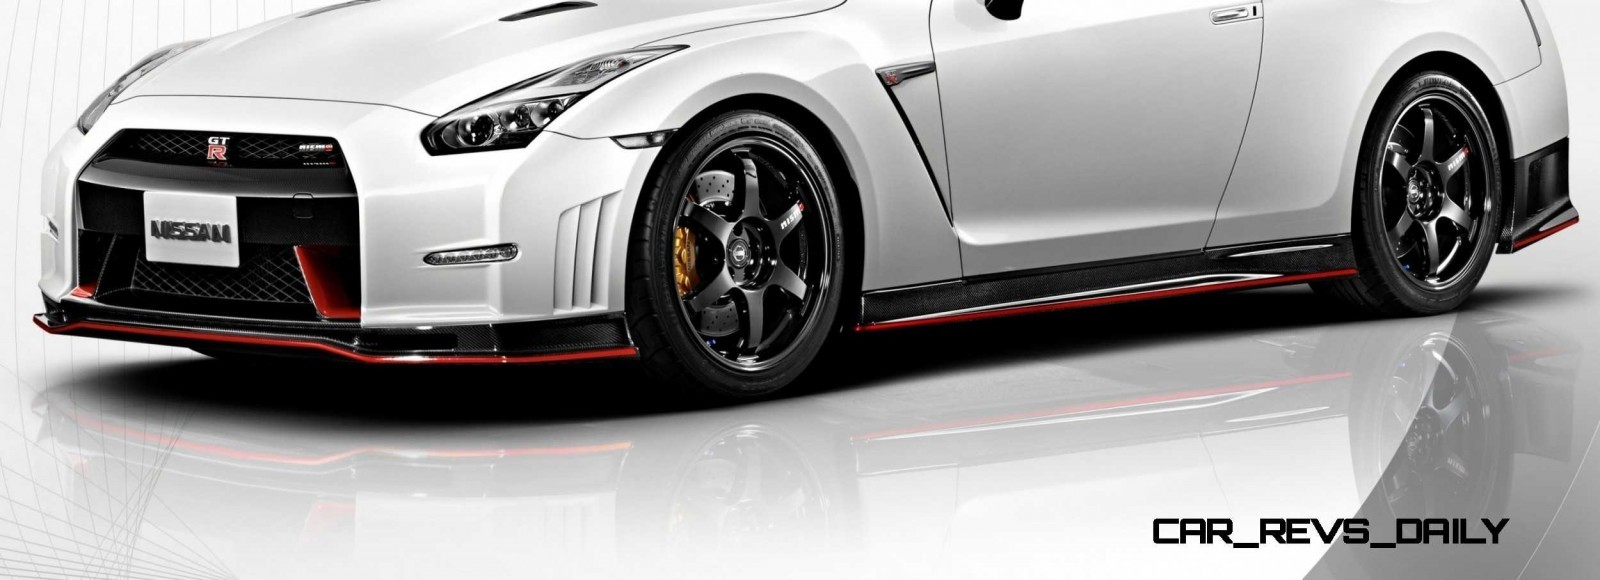 12 2014 Nissan GT-R NISMO Brings FutureTech and 600 Horsepower